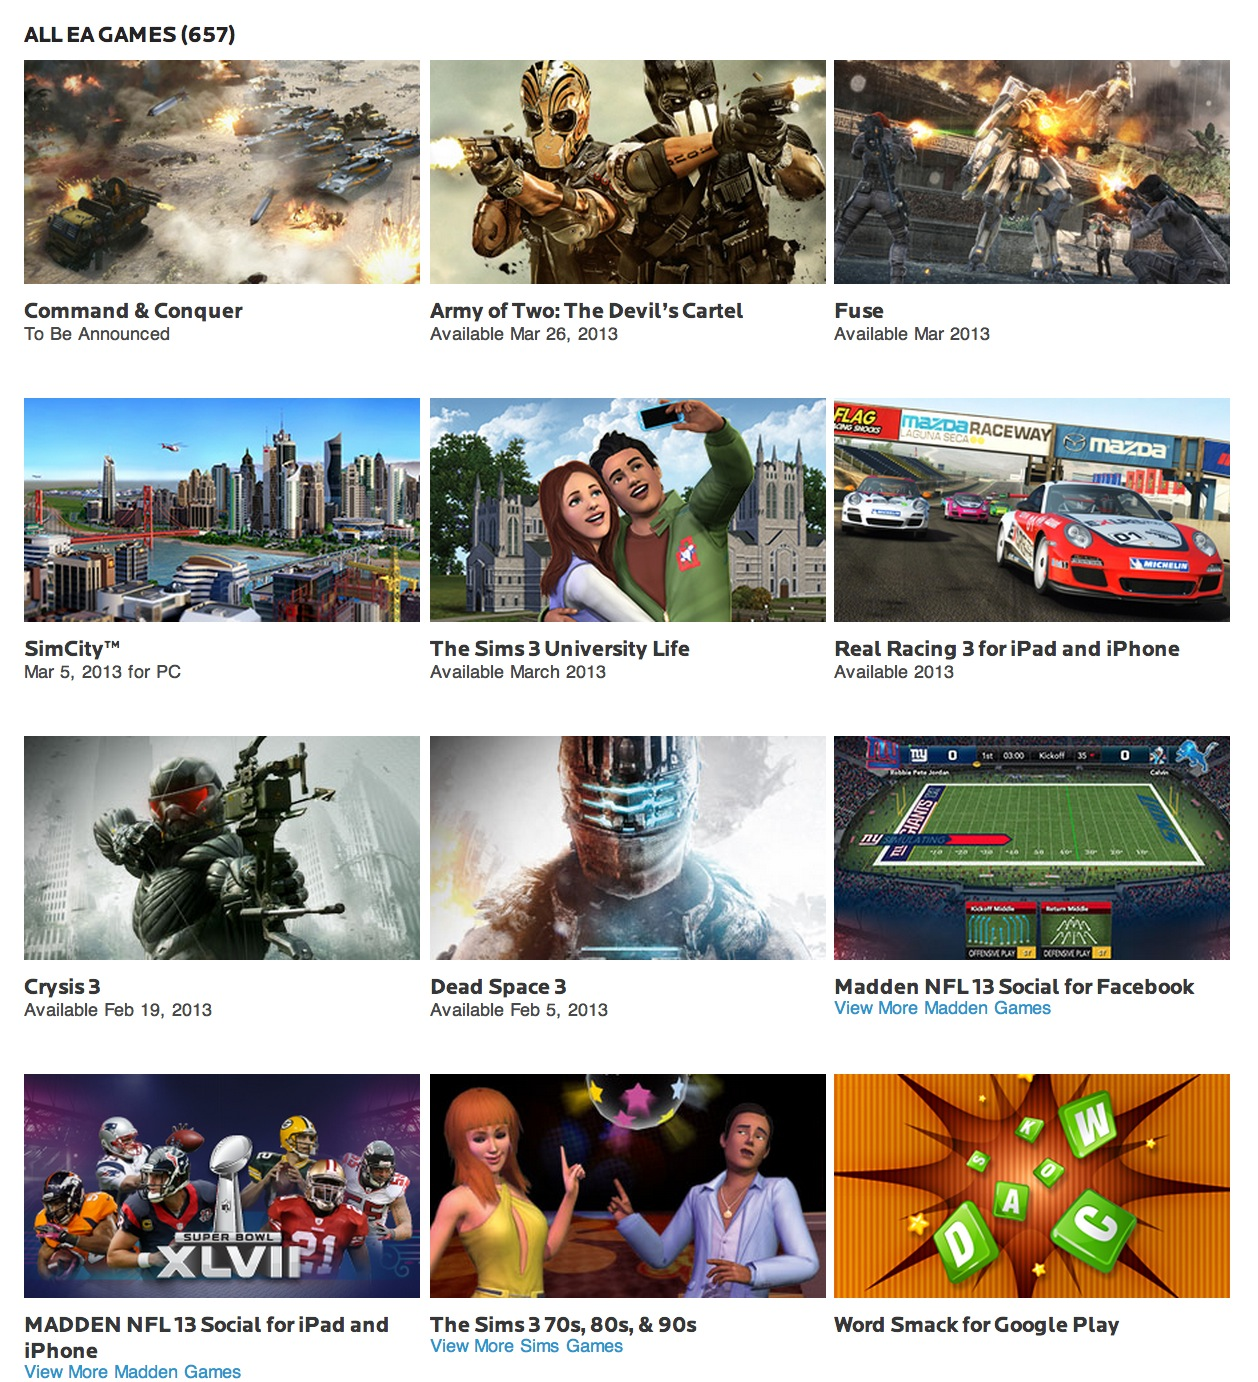 Electronic Arts Reports Q3 FY13 Financial Results; 6 of the Top 20 Titles & Number 1 for iOS Games